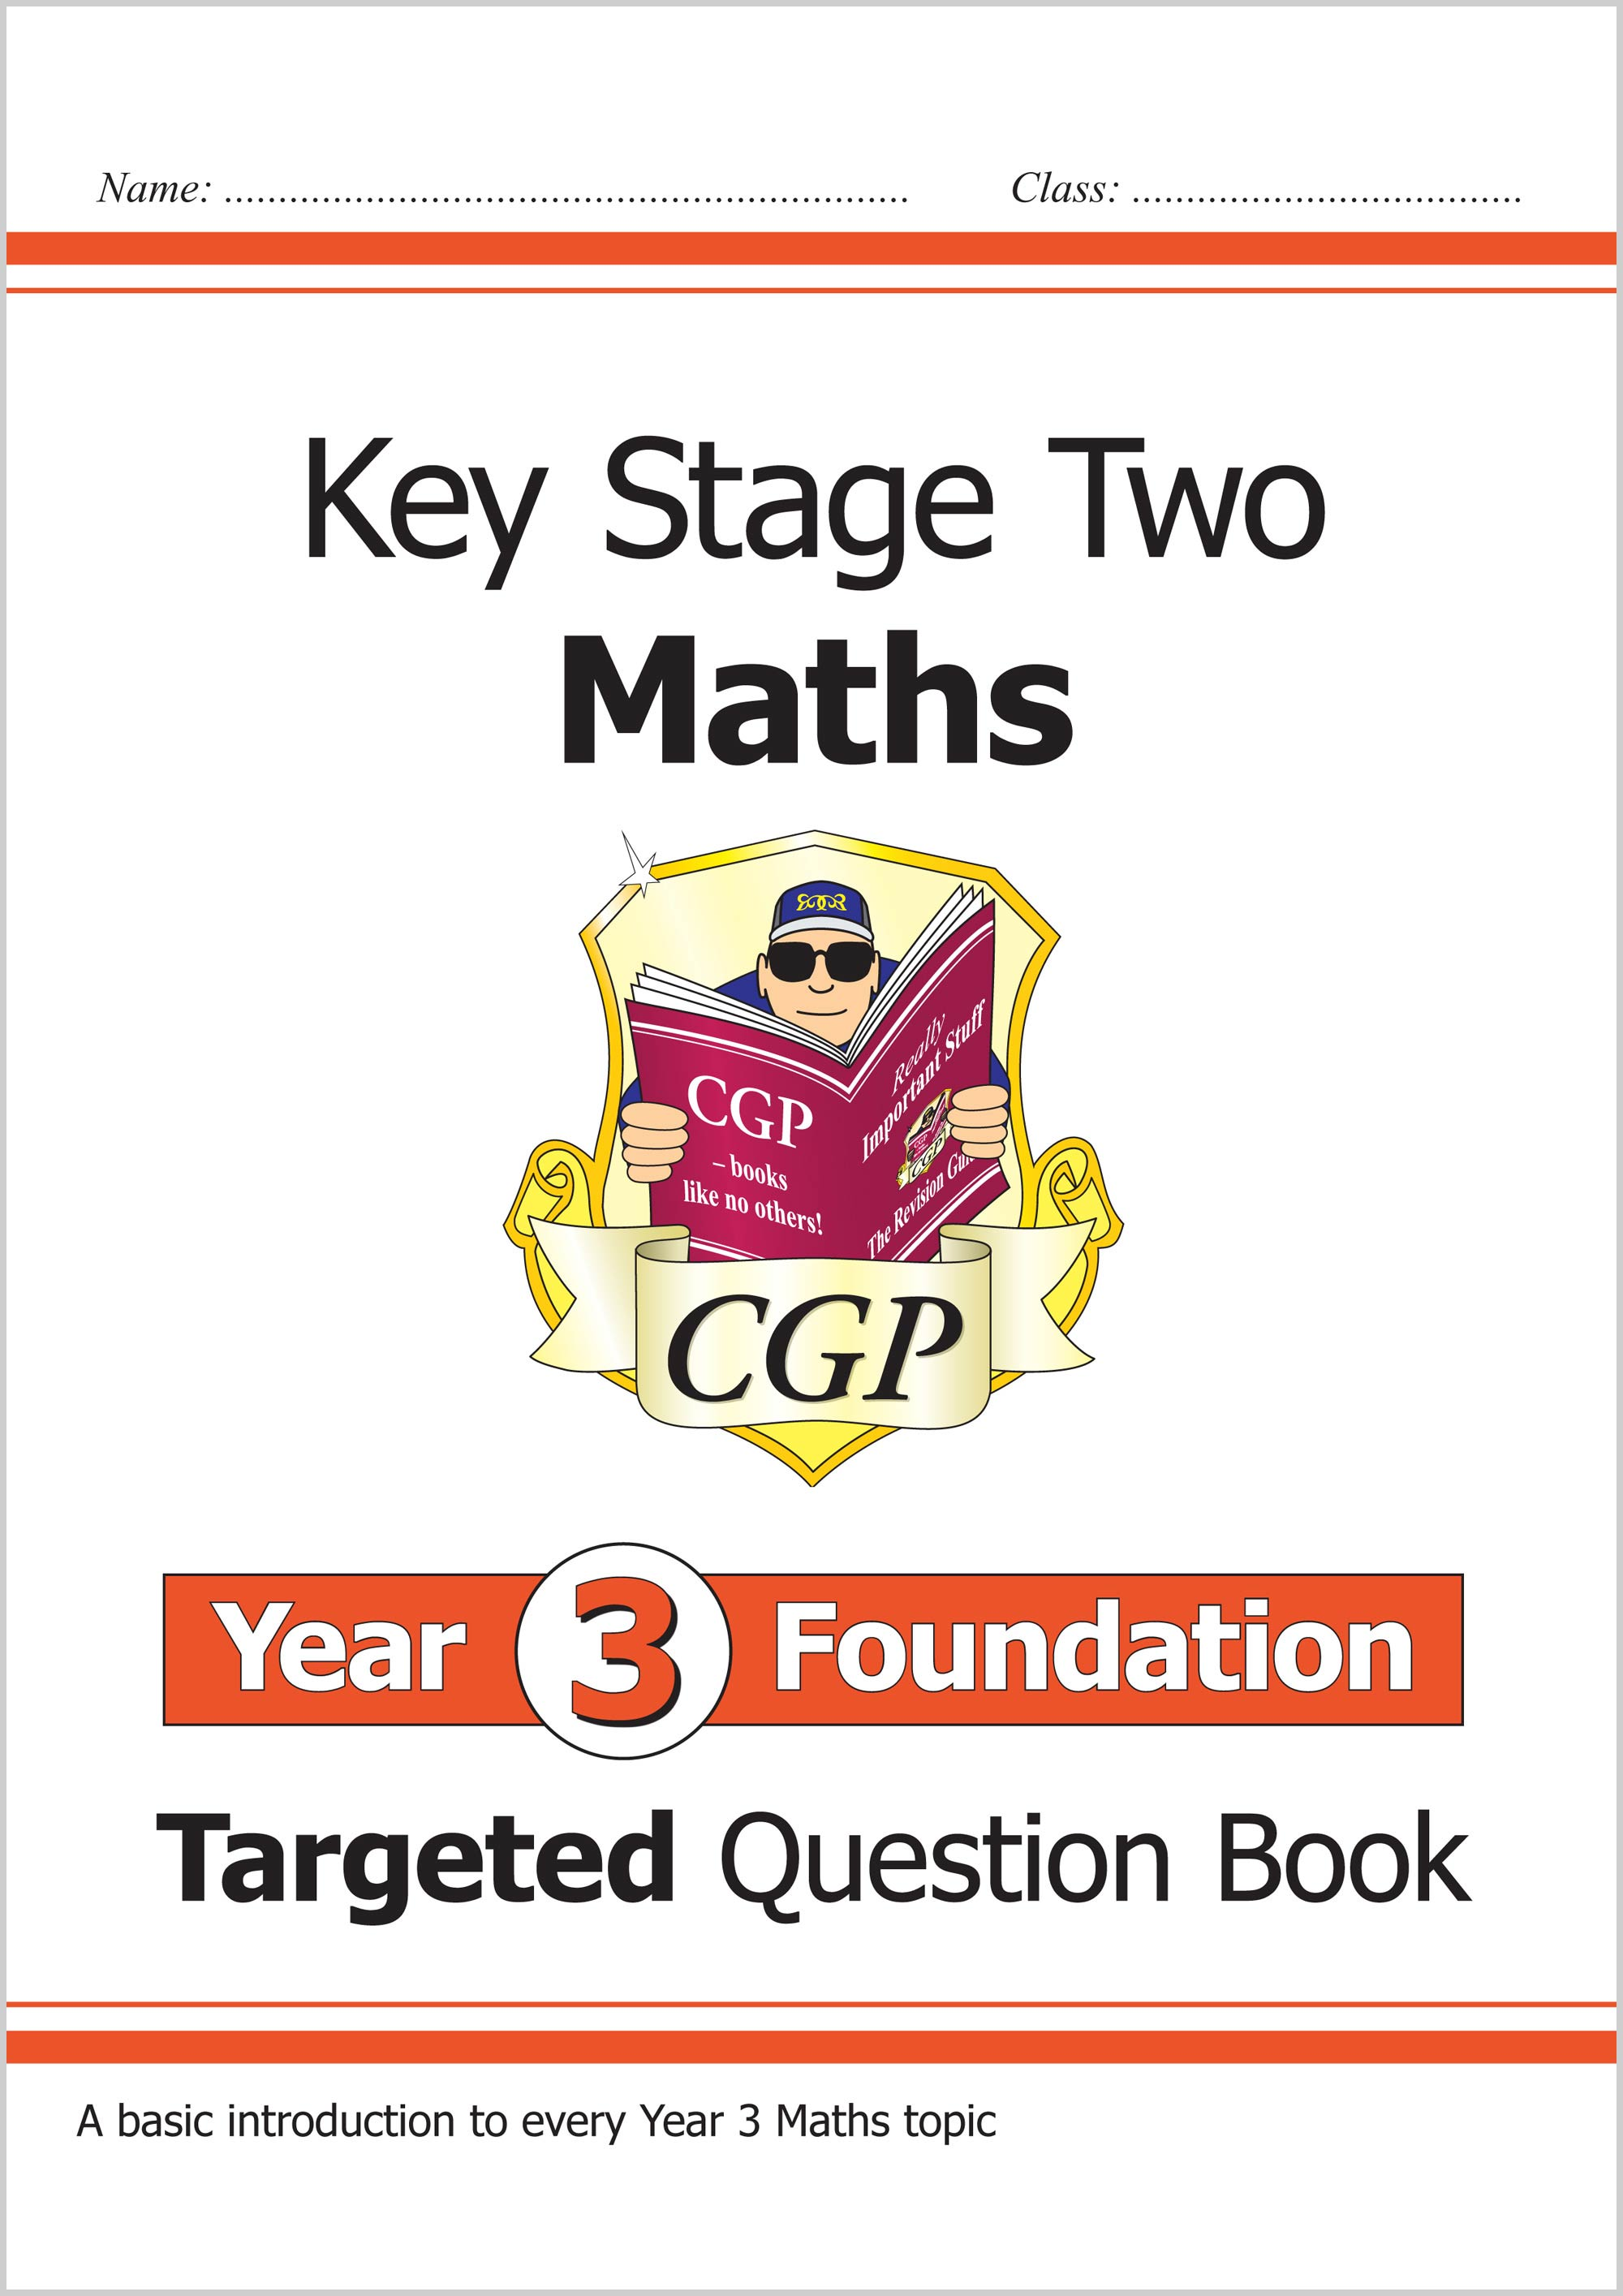 M3FQ21 - KS2 Maths Targeted Question Book: Year 3 Foundation